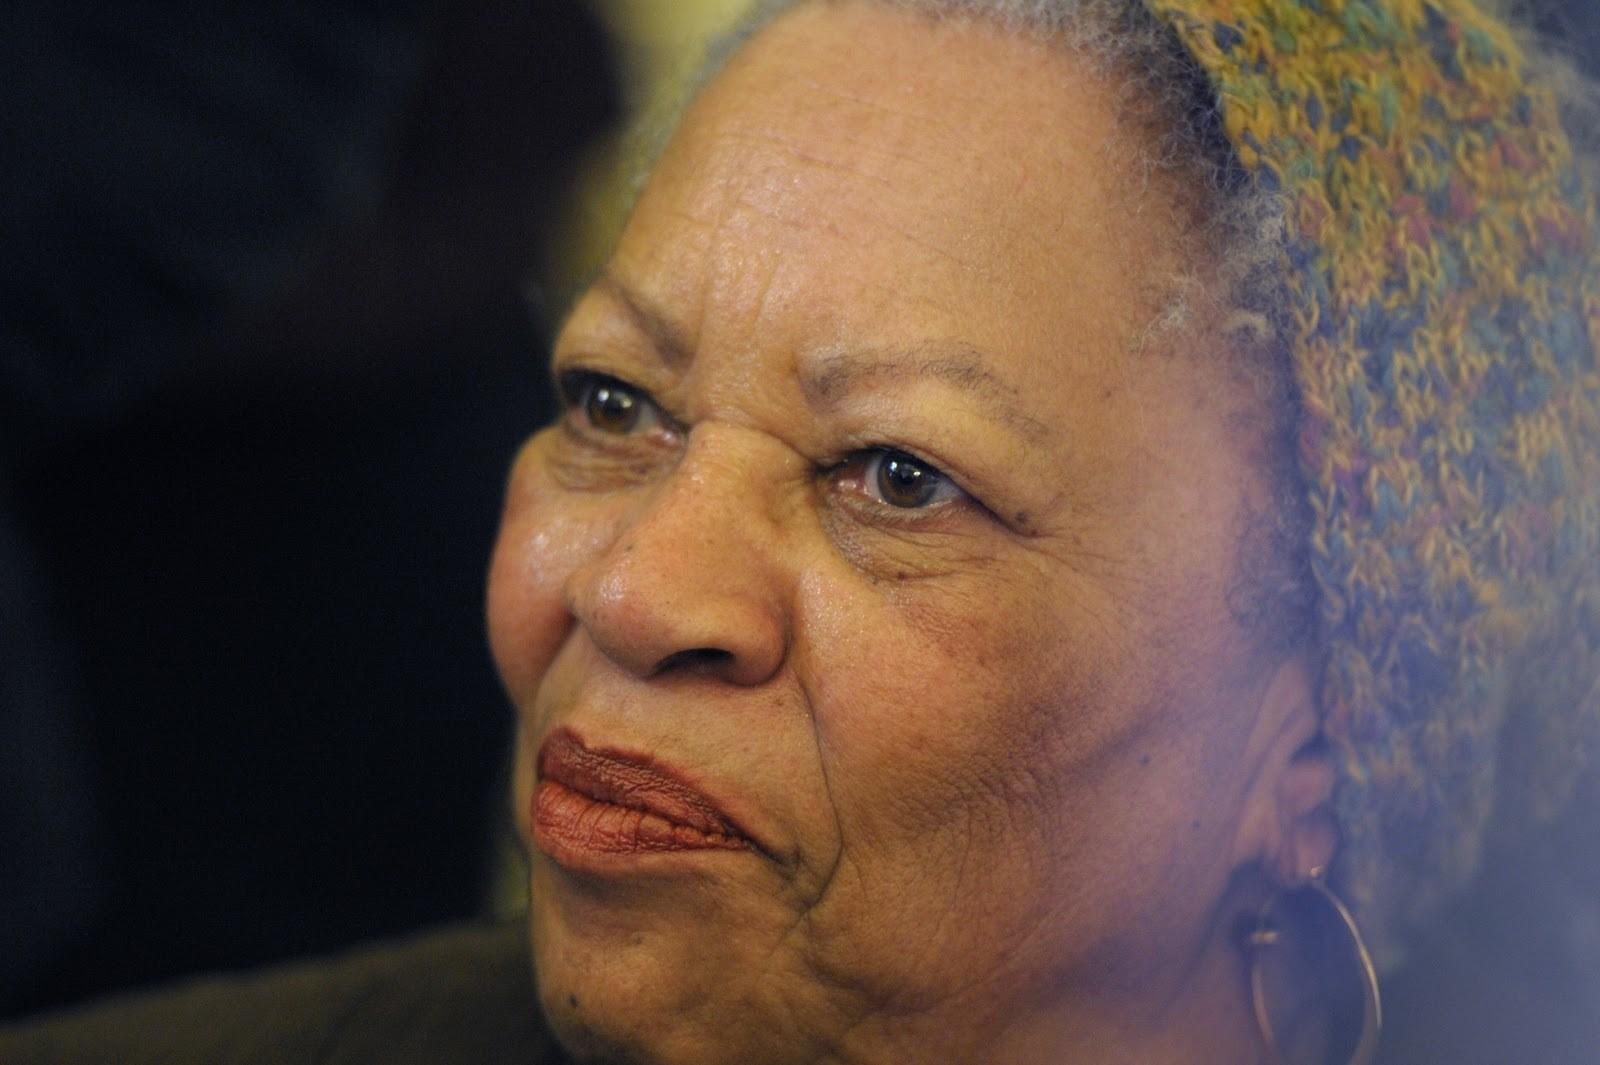 U.S. author Toni Morrison poses after being awarded the Officer de la Legion d'Honneur, the Legion of Honour, France's highest award, during a ceremony at the Culture Ministry in Paris November 3, 2010.  REUTERS/Philippe Wojazer  (FRANCE - Tags: POLITICS SOCIETY HEADSHOT) - PM1E6B315PZ01